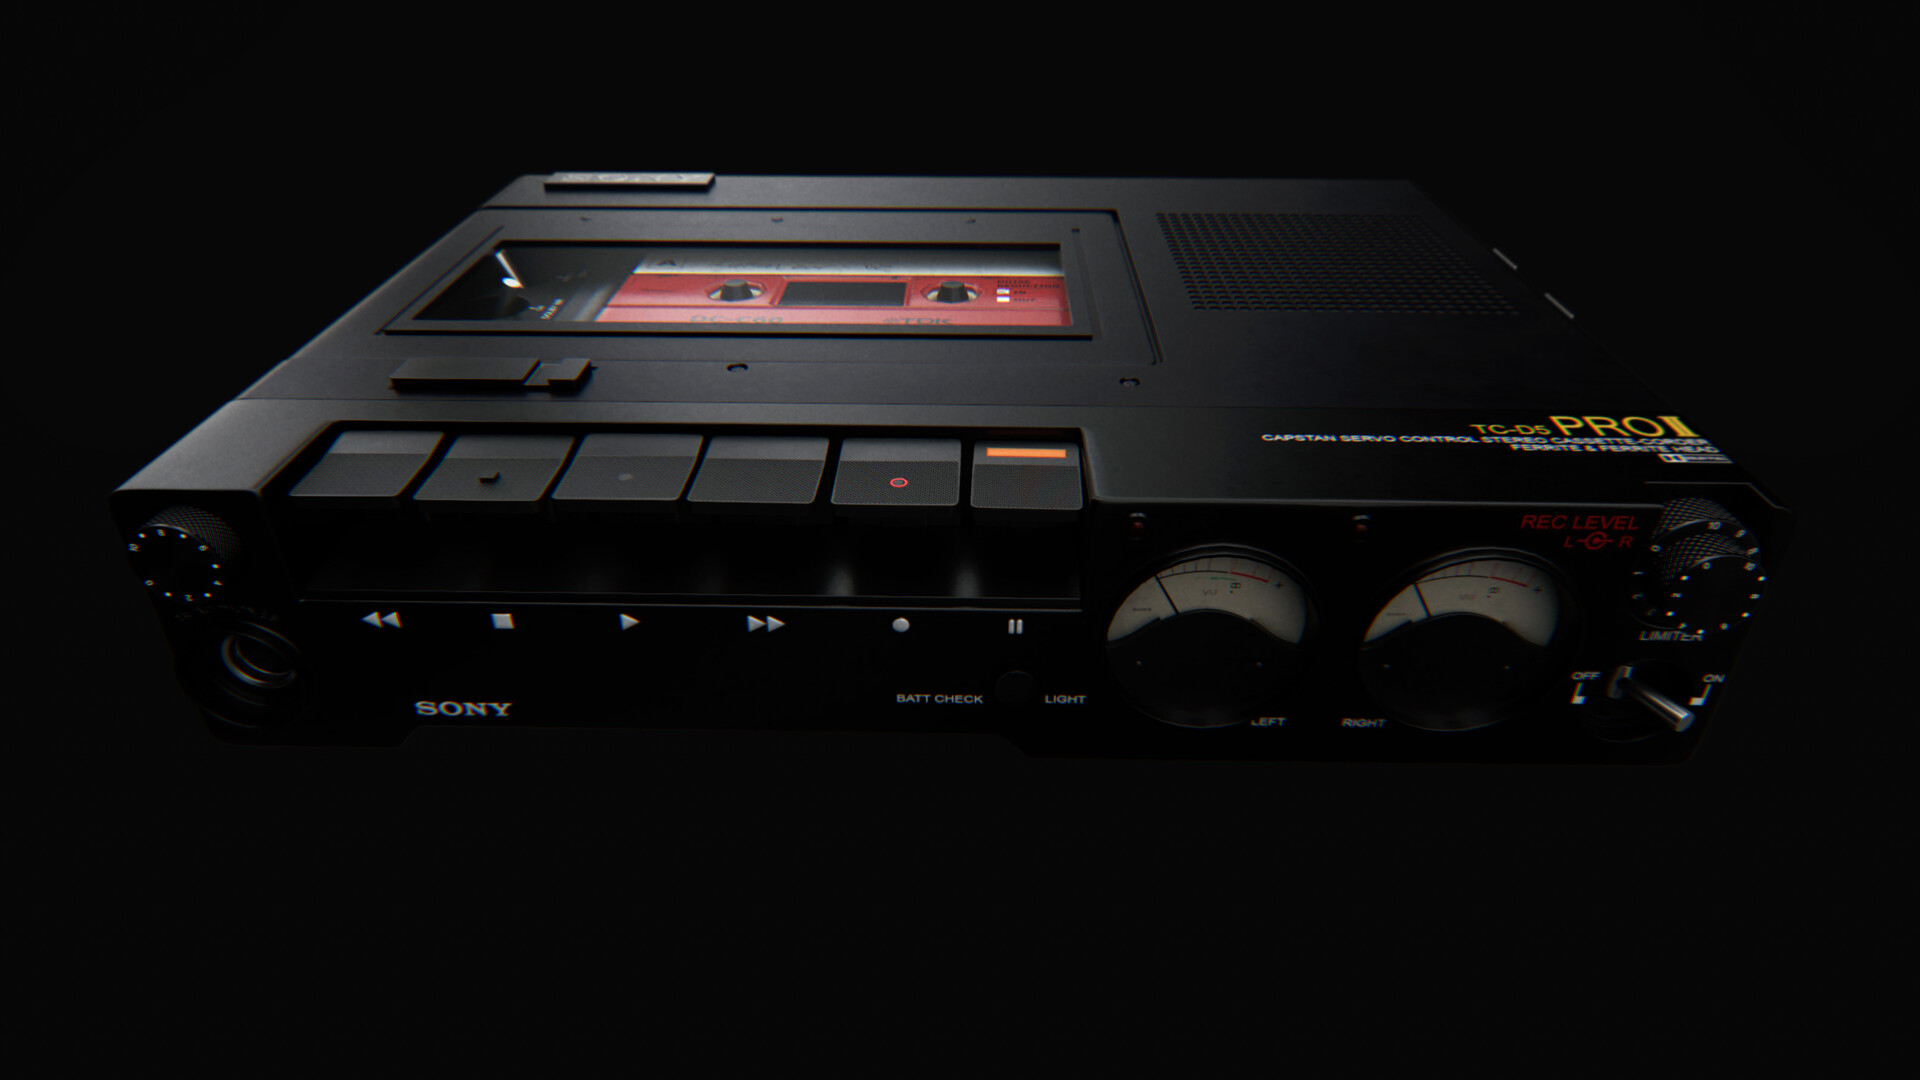 Of thanks as well is the owner of the cassette tape, acquired freely from: https://www.cgtrader.com/items/487726/download-page